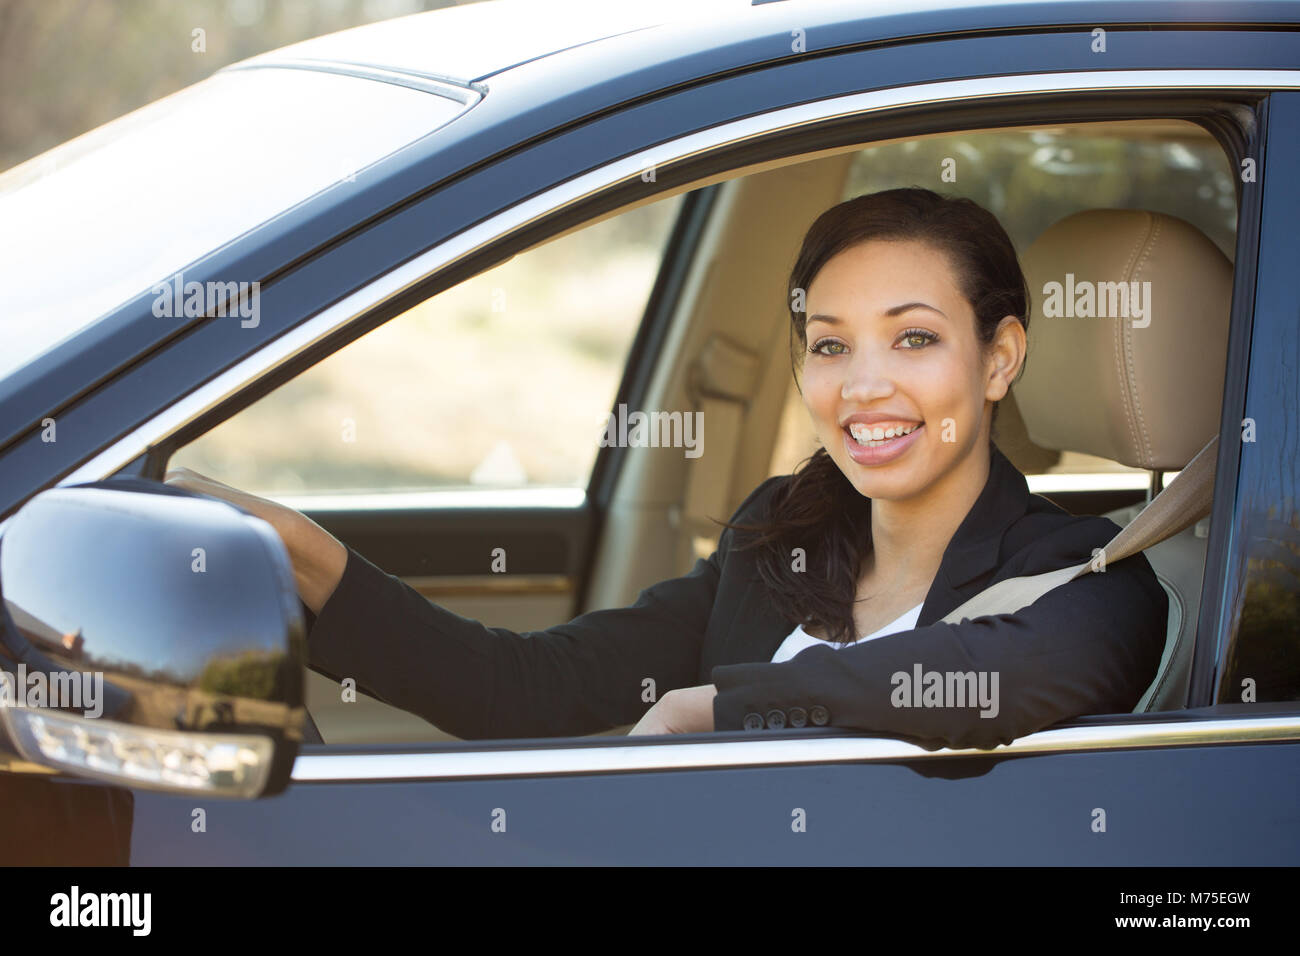 Business woman talking on her mobile phone. outside an office bussiness. - Stock Image